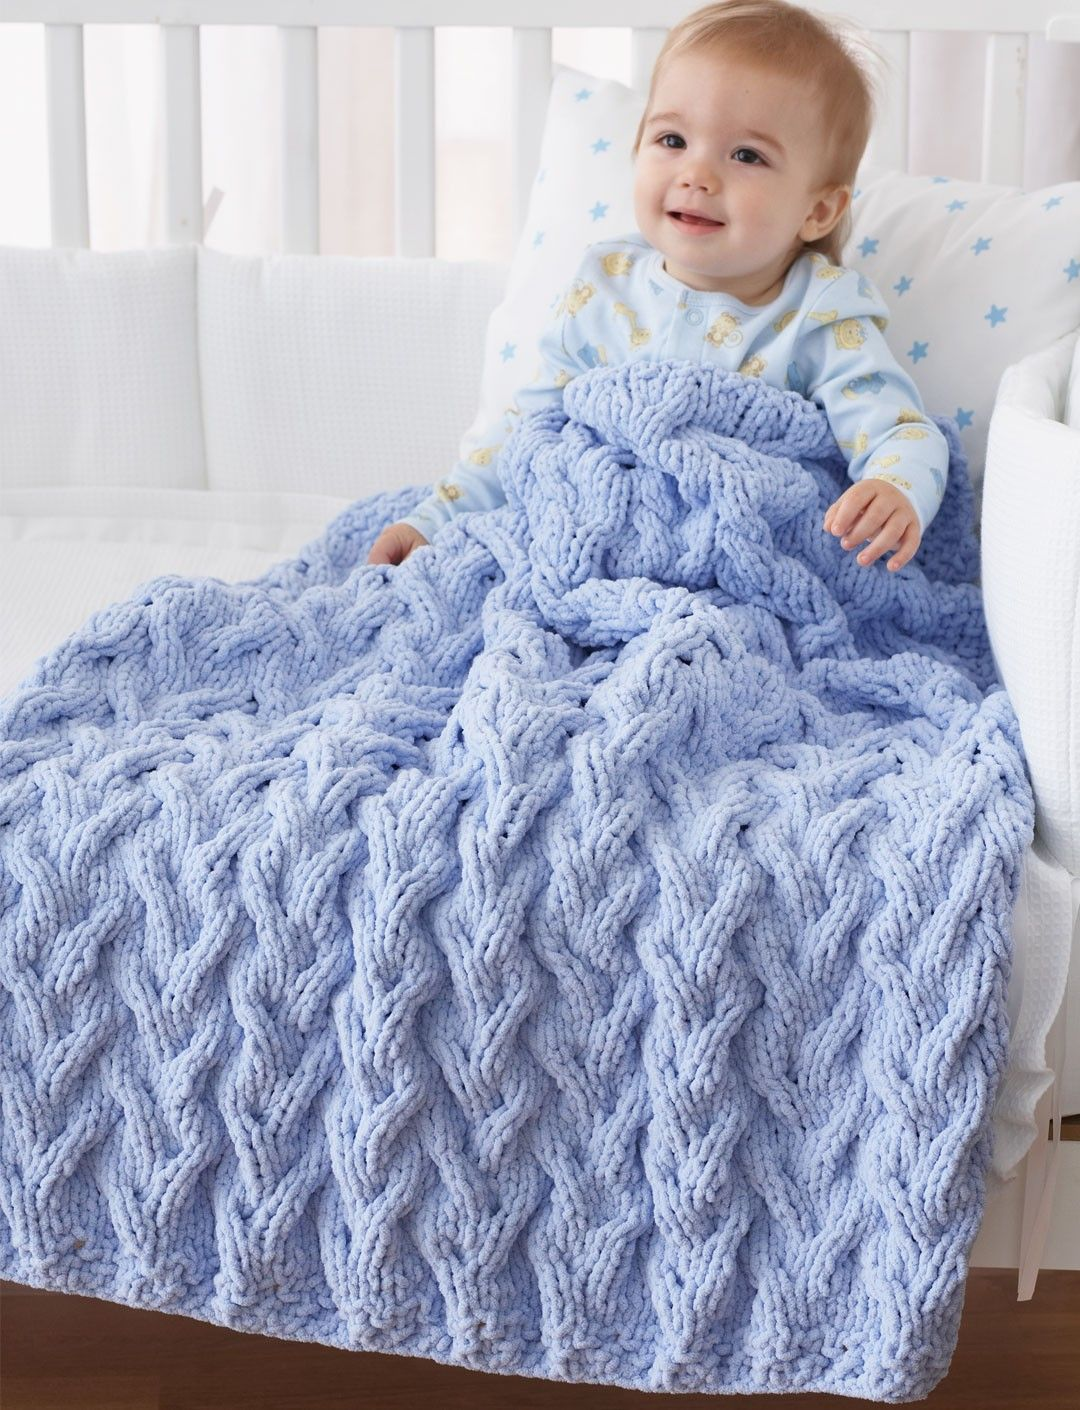 Knitting Blankets For Babies : Cable afghan knitting patterns blanket and